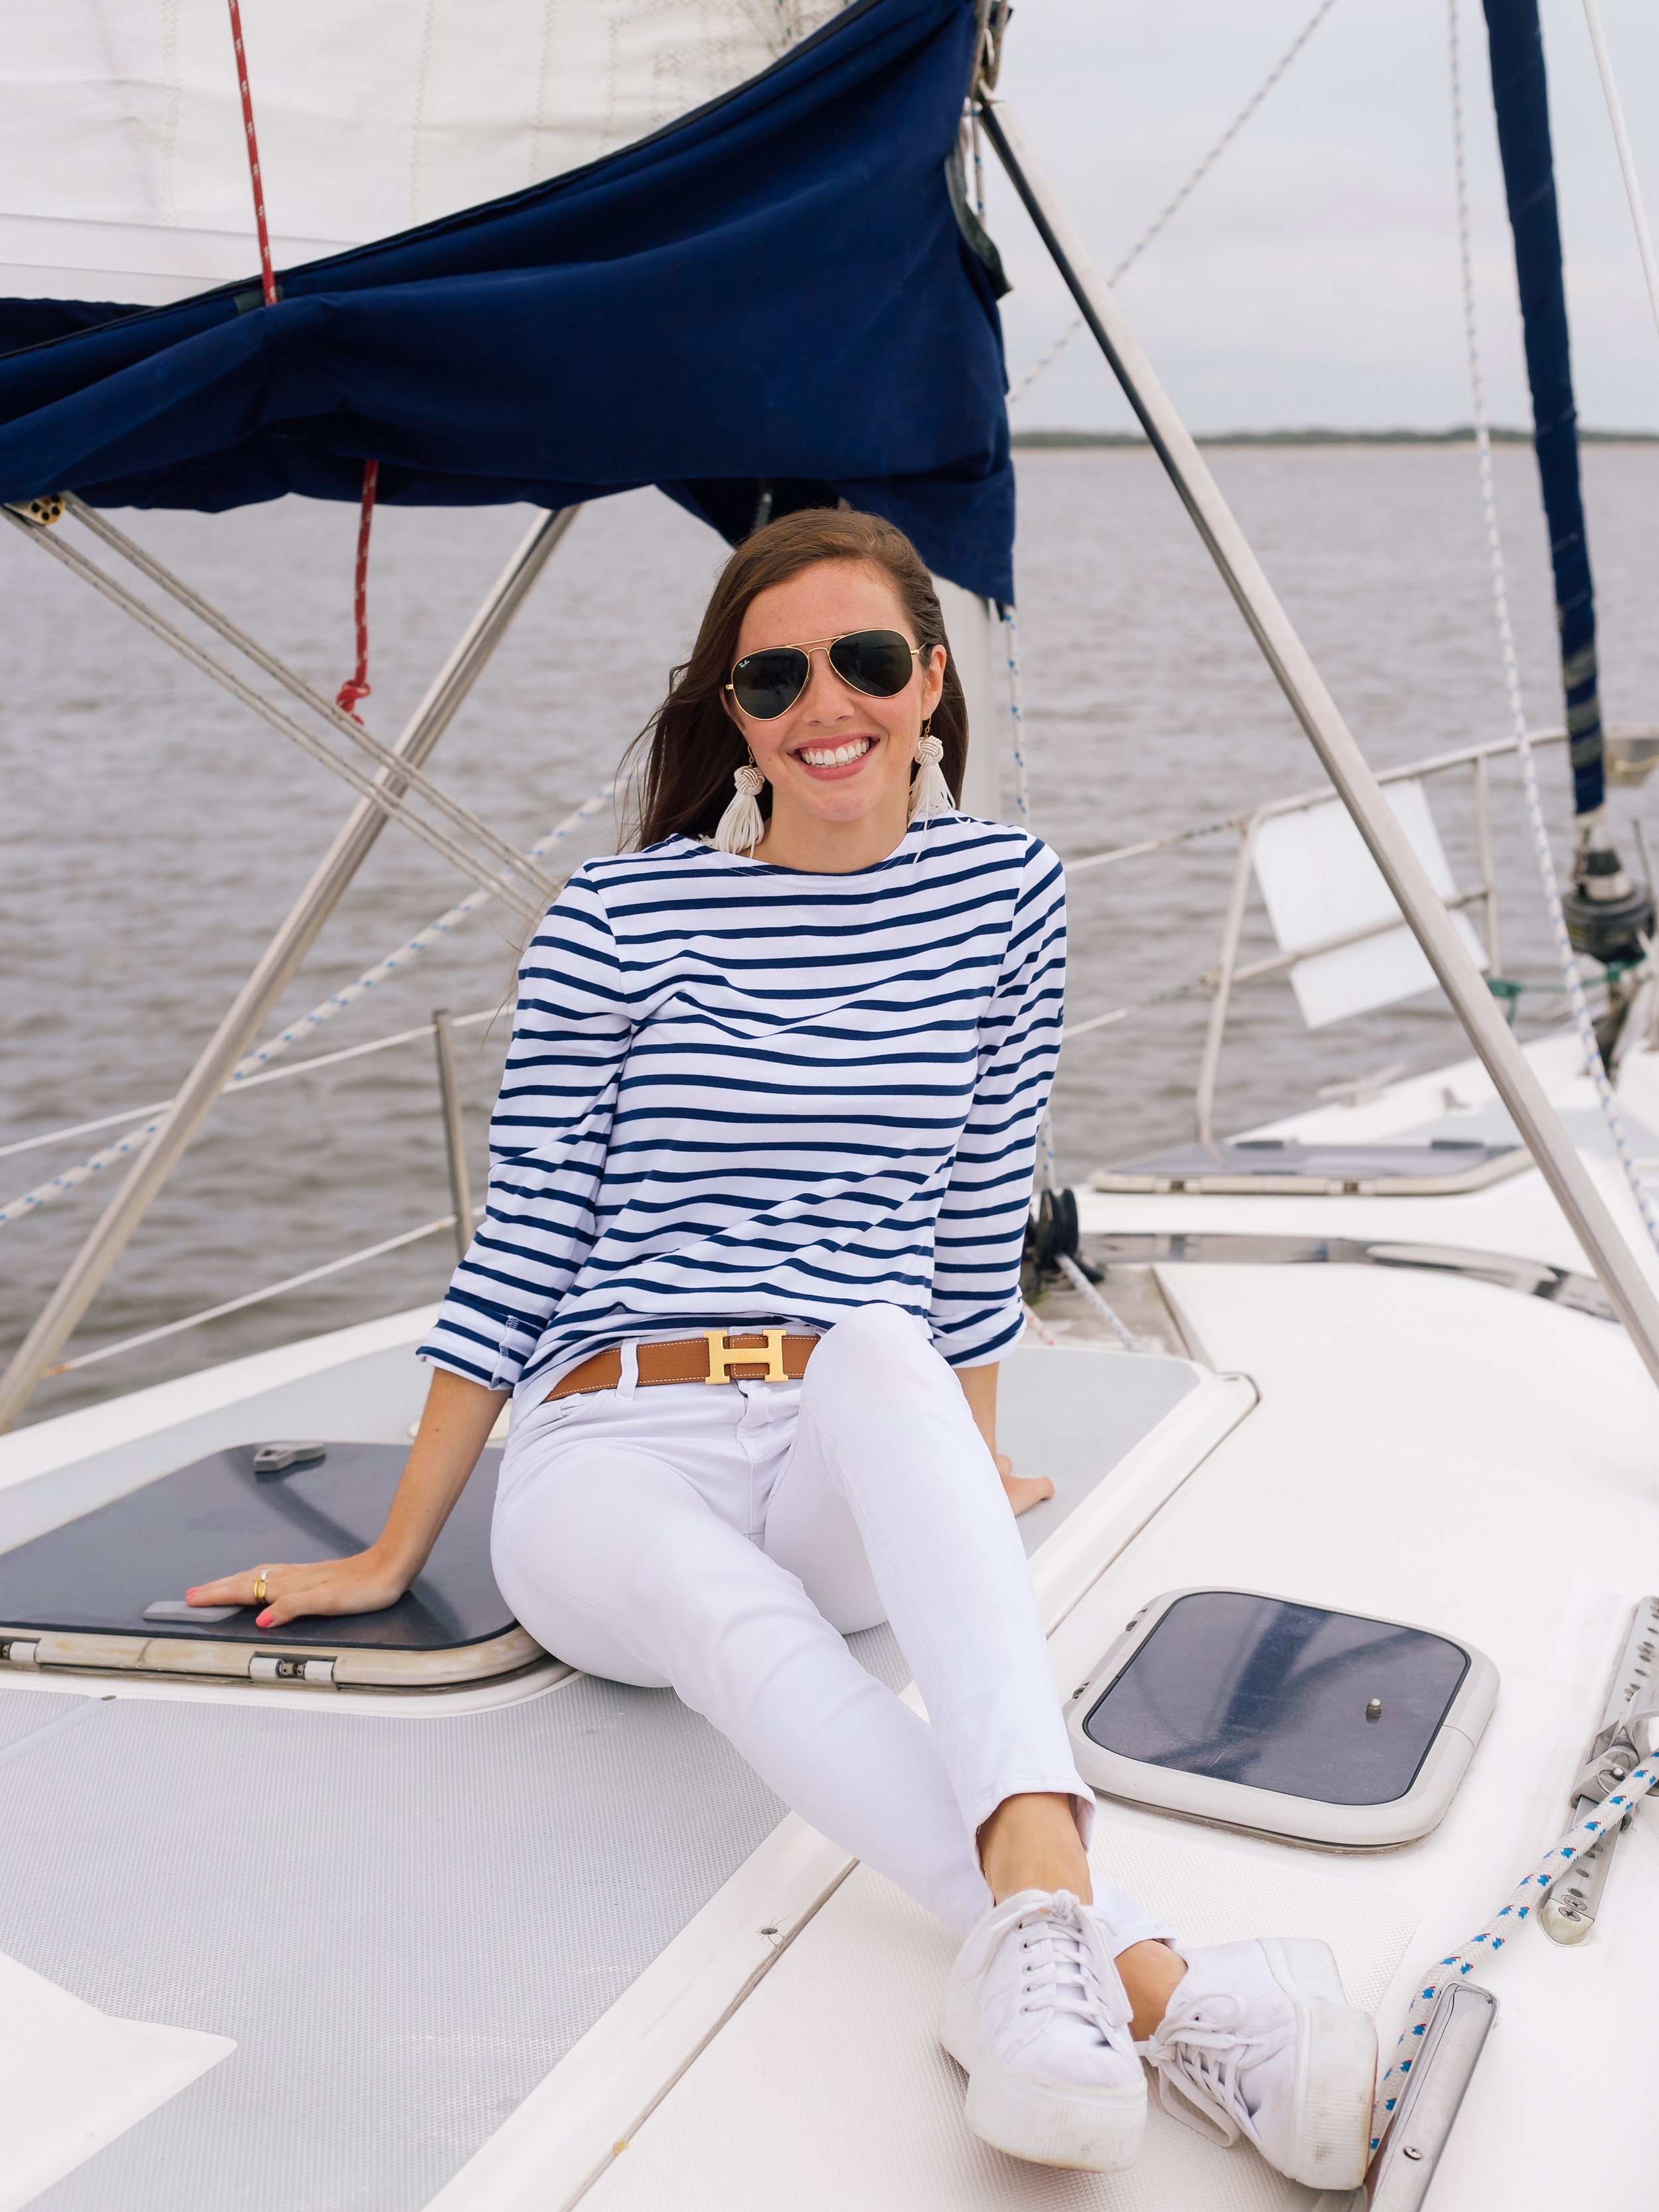 LCB STYLE FASHION BLOGGER AMELIA ISLAND SAILING (1 of 12).jpg